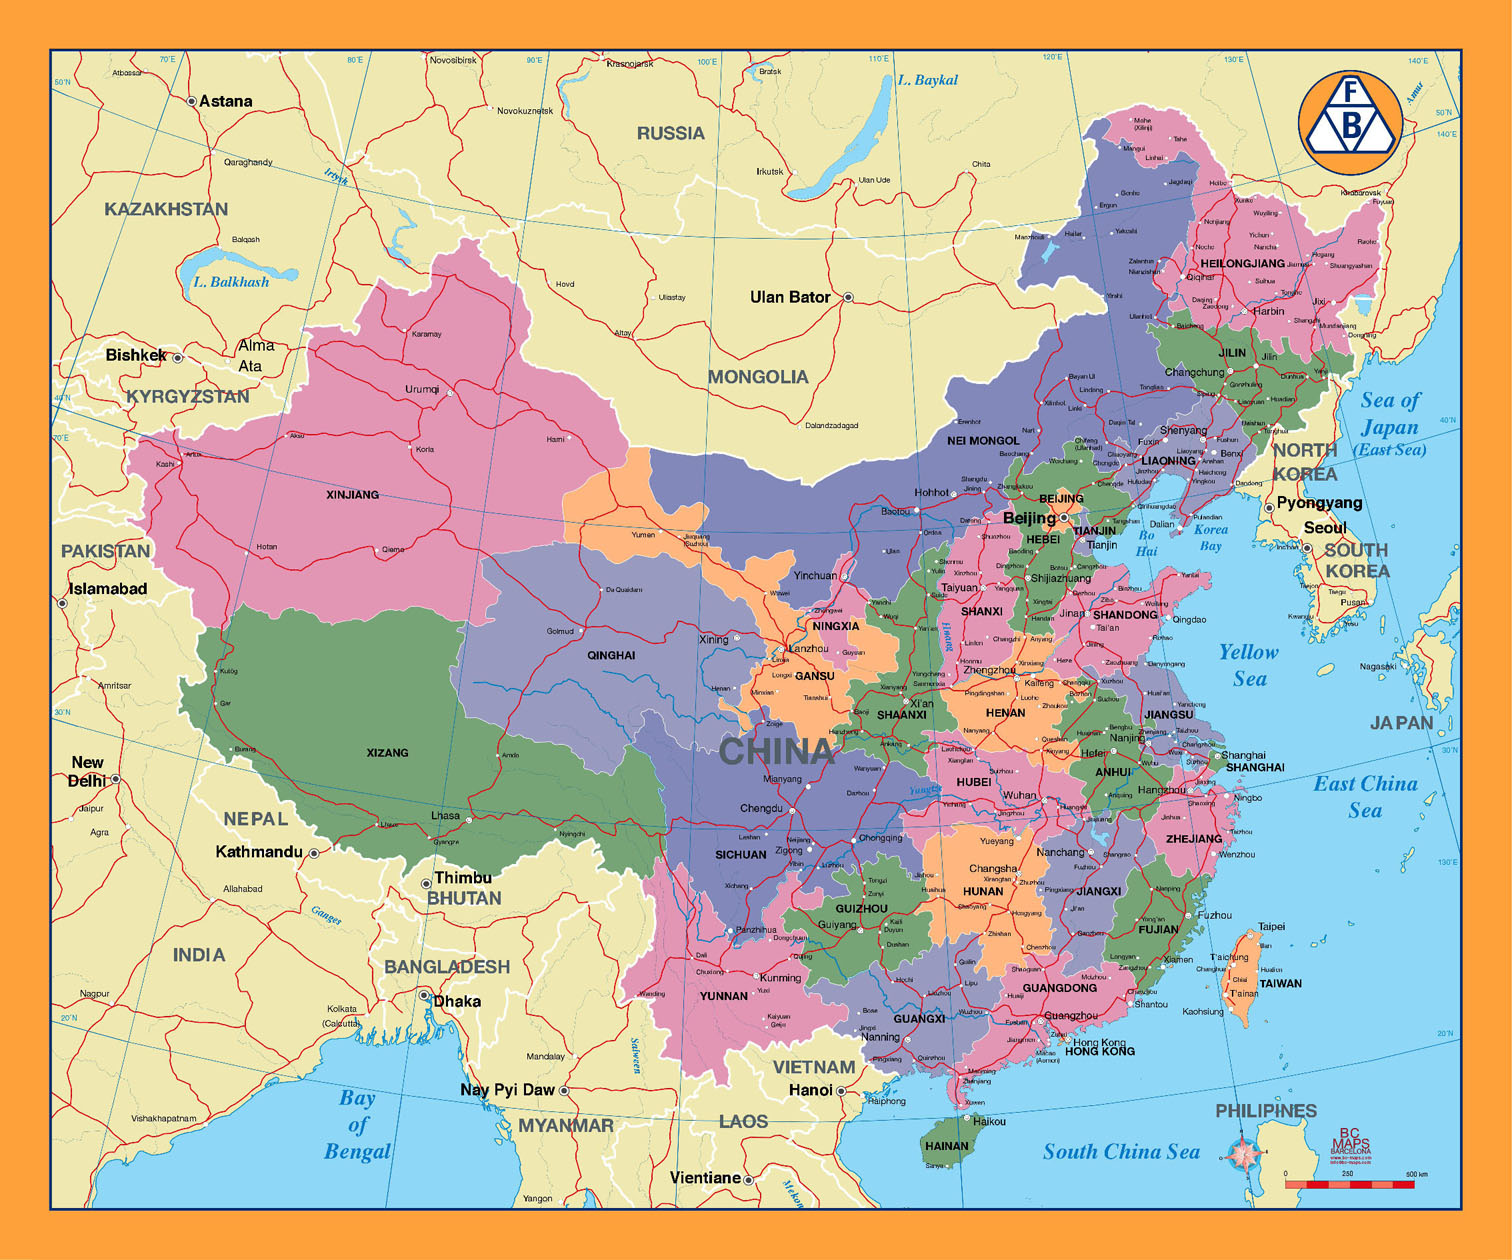 China City Maps Maps Of Major Cities In China - Cities map of china